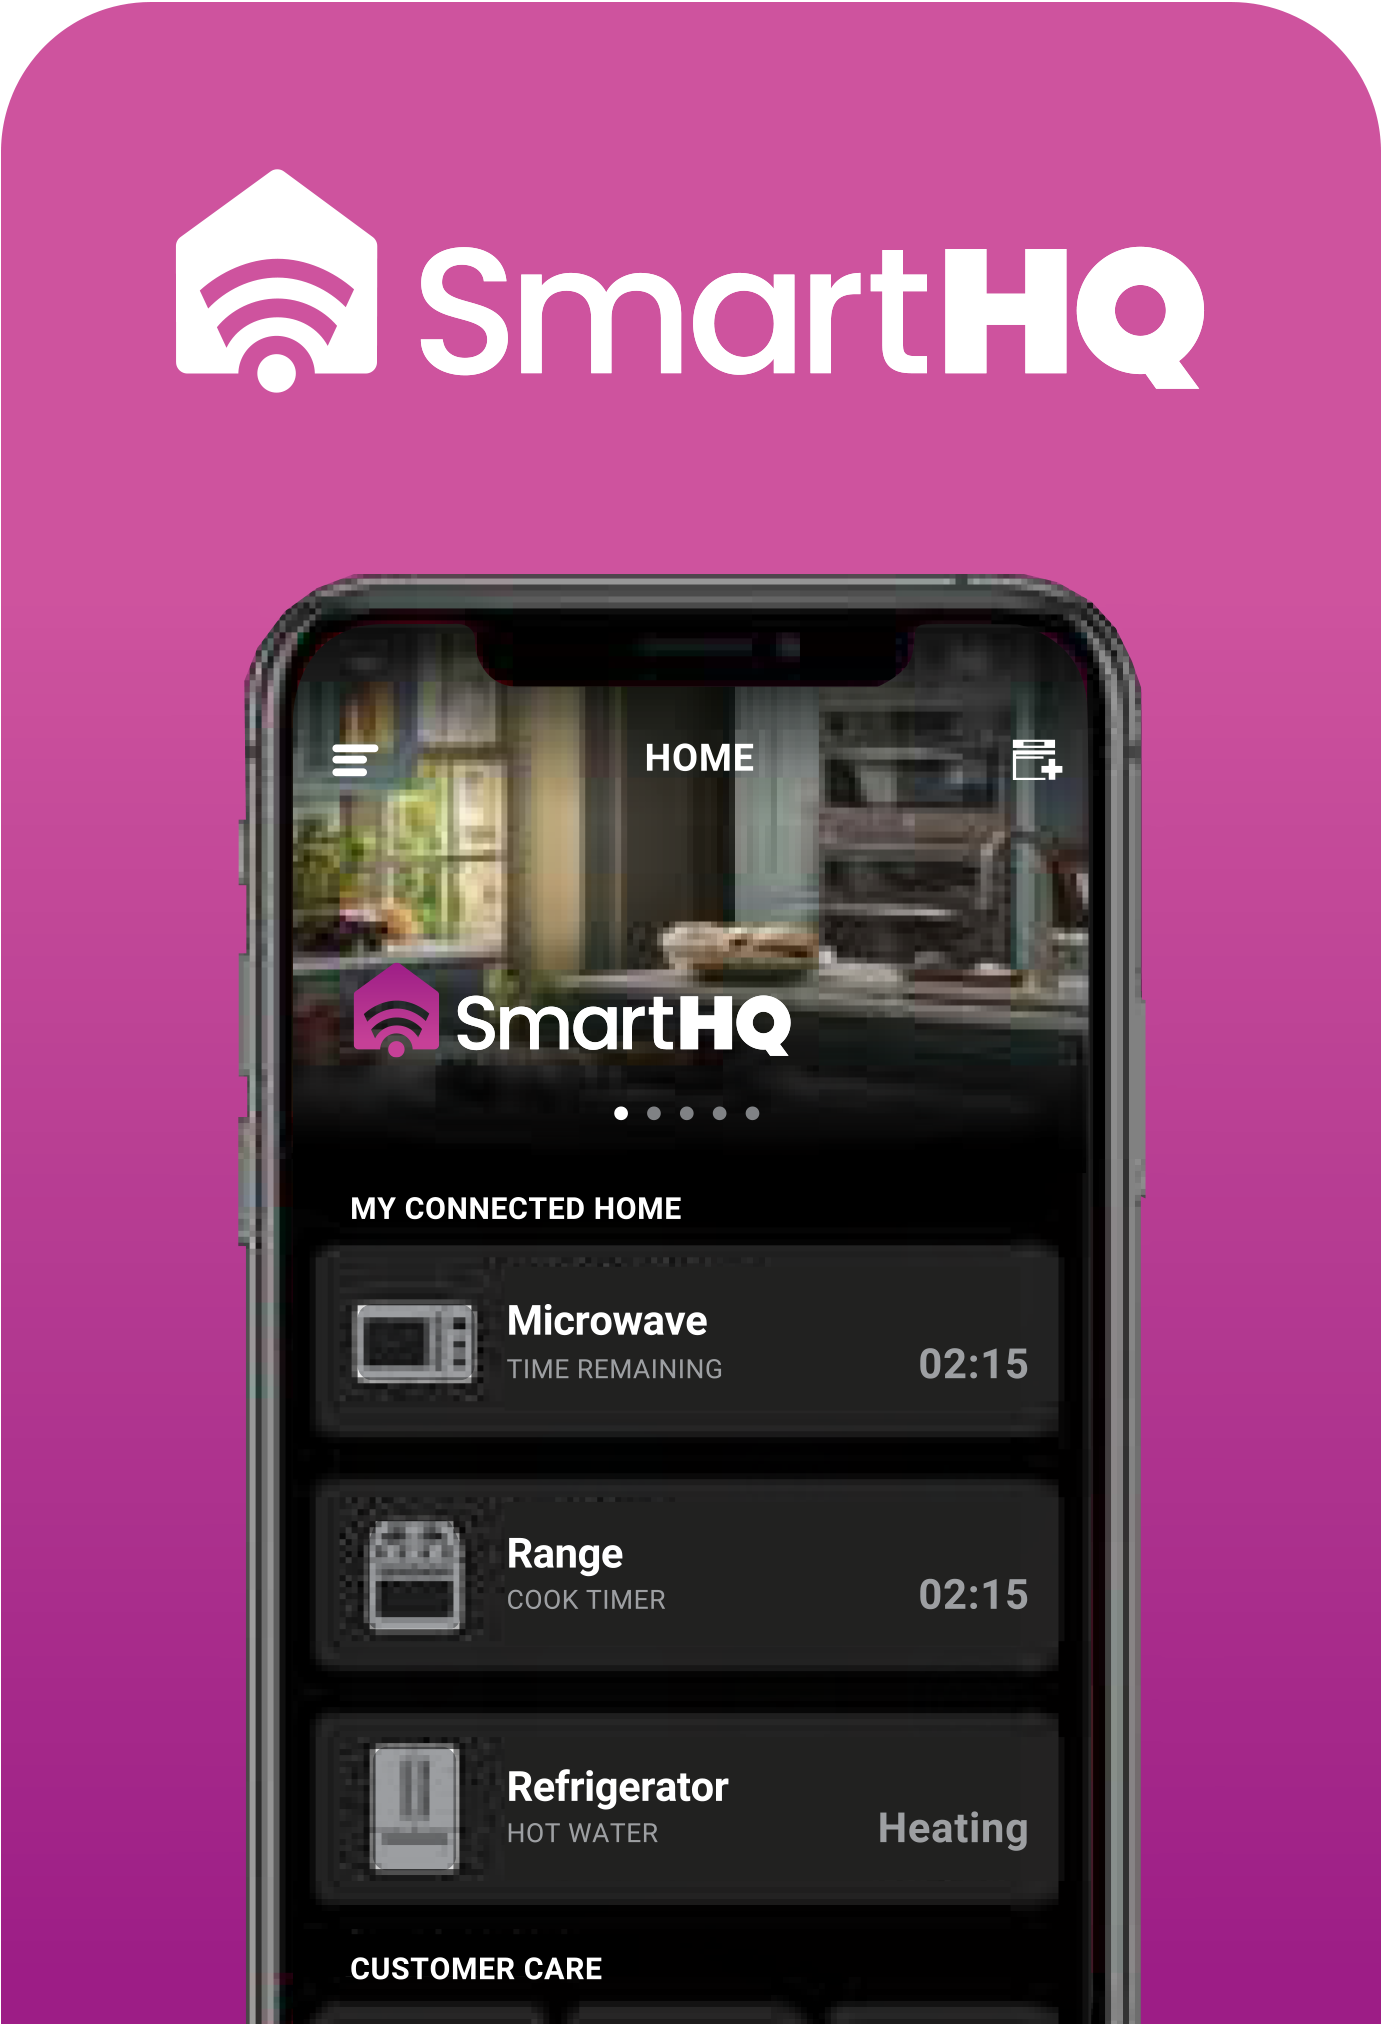 Phone screen displaying SmartHQ app on pink background